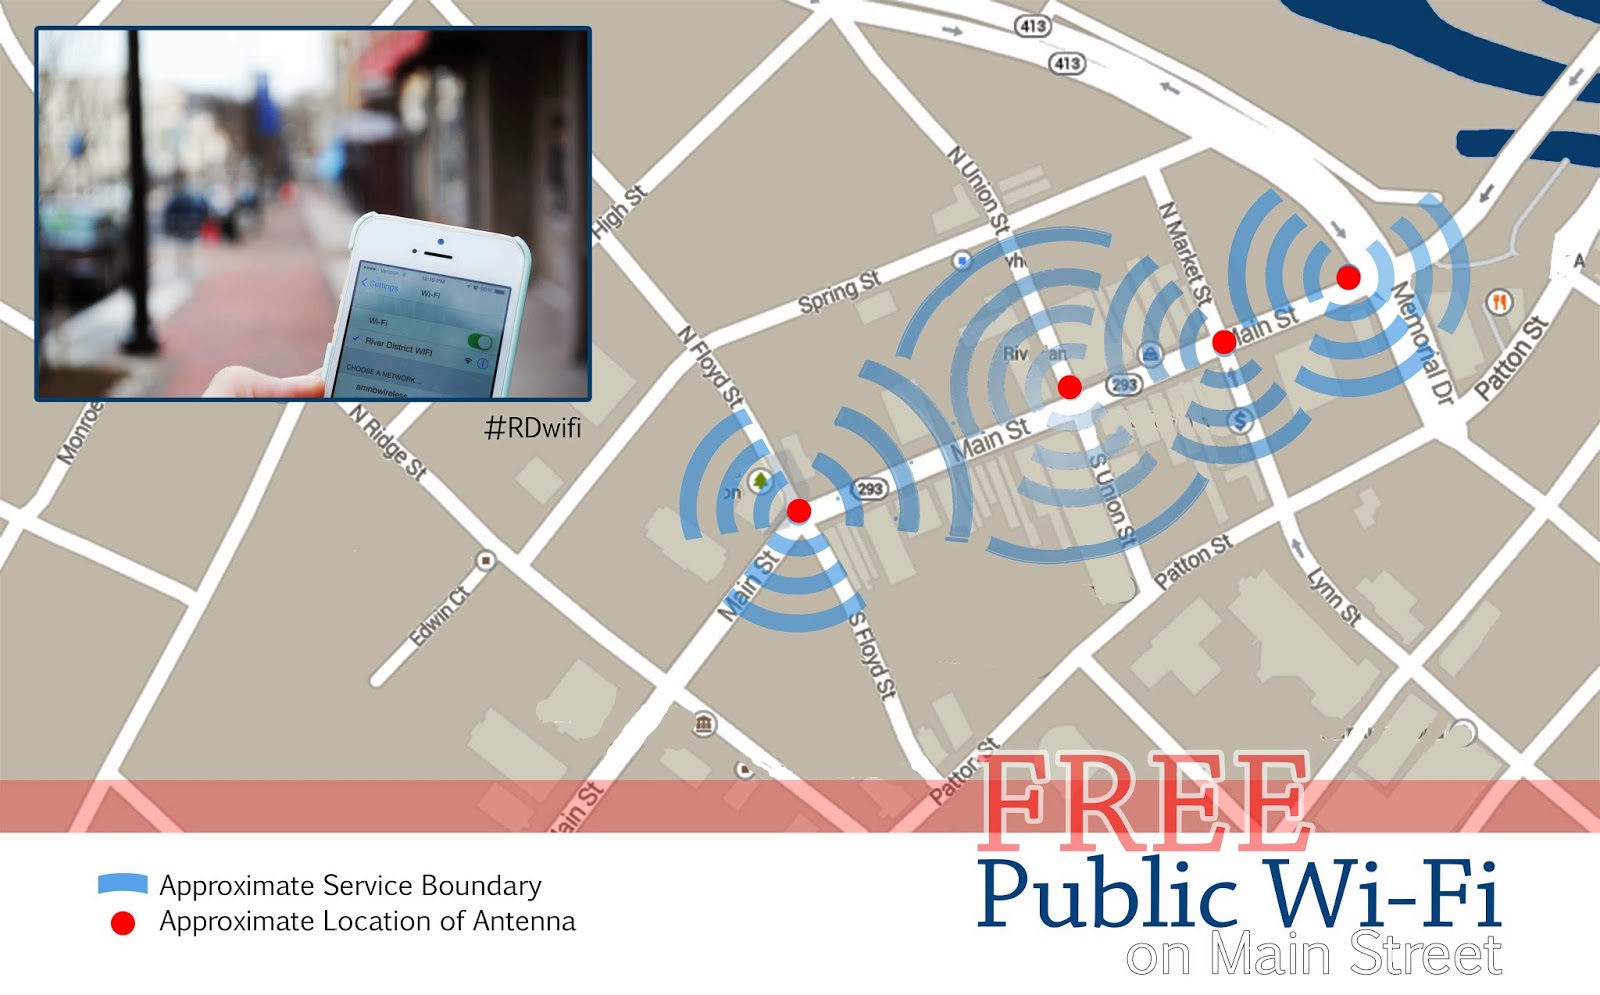 Danville VA, Virginia, River District, Downtown Danville, Free Wi-fi, #RDWifi